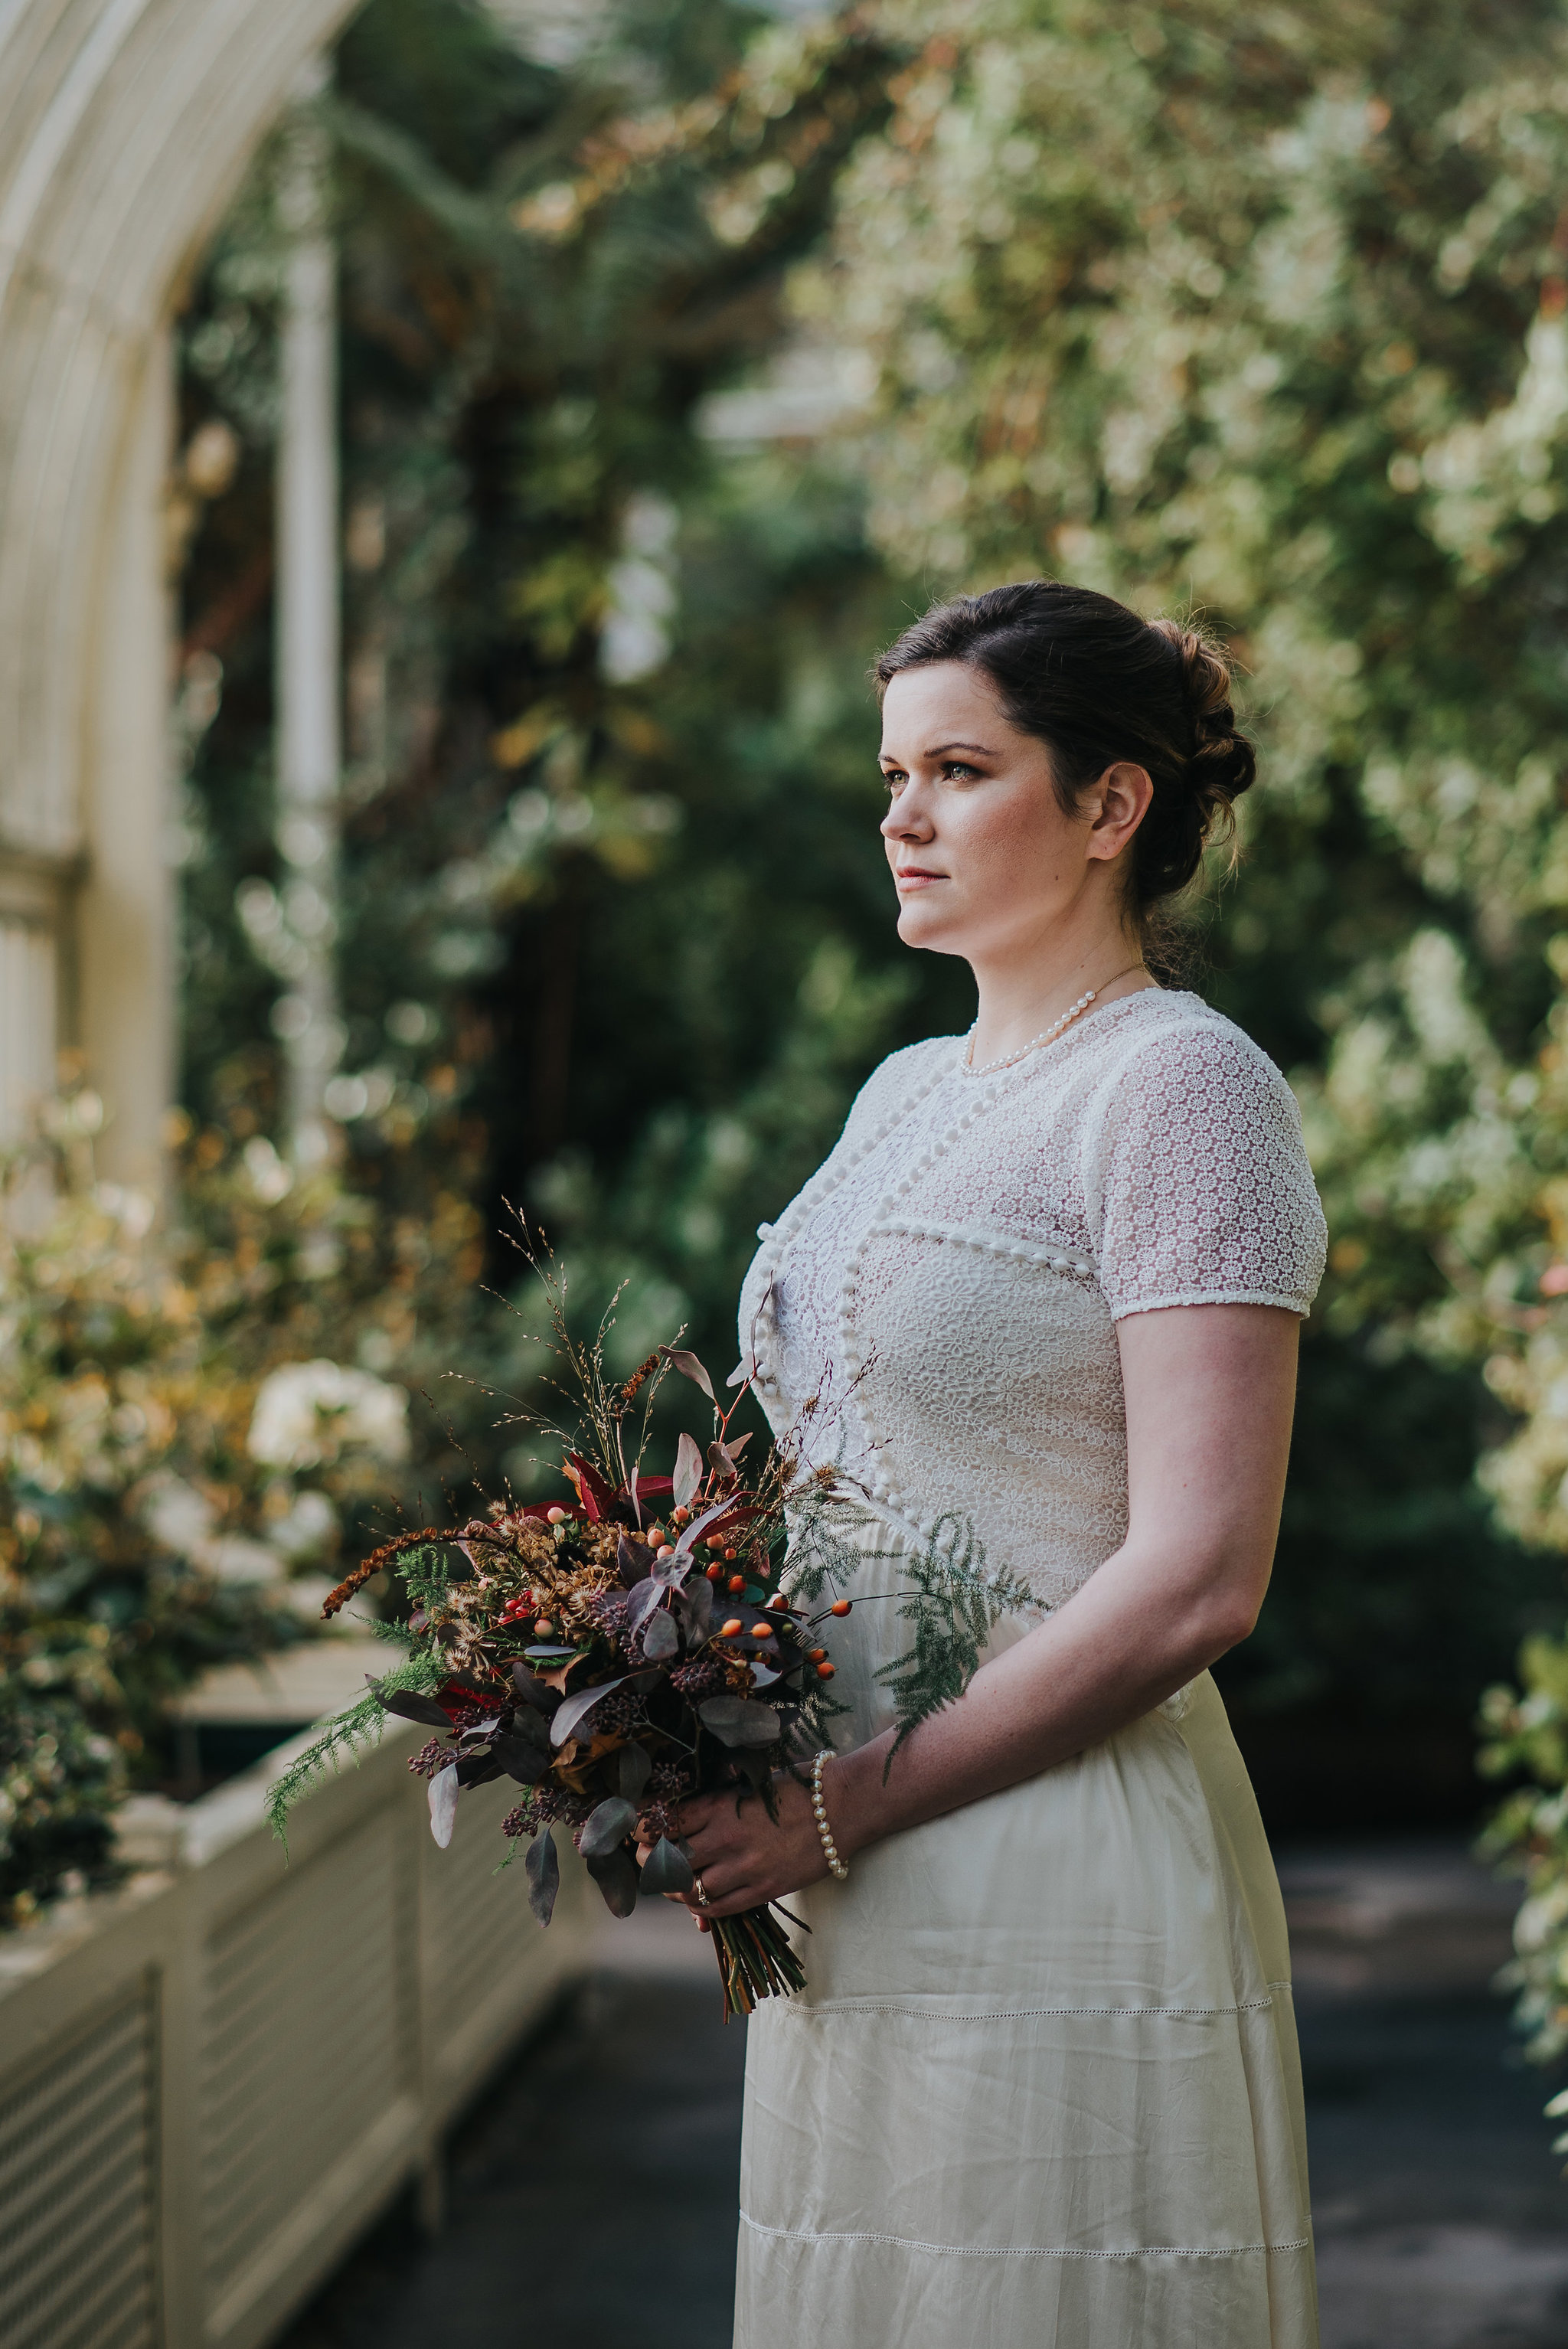 Bride holding flowers on her wedding day at the Botanic Gardens Dublin